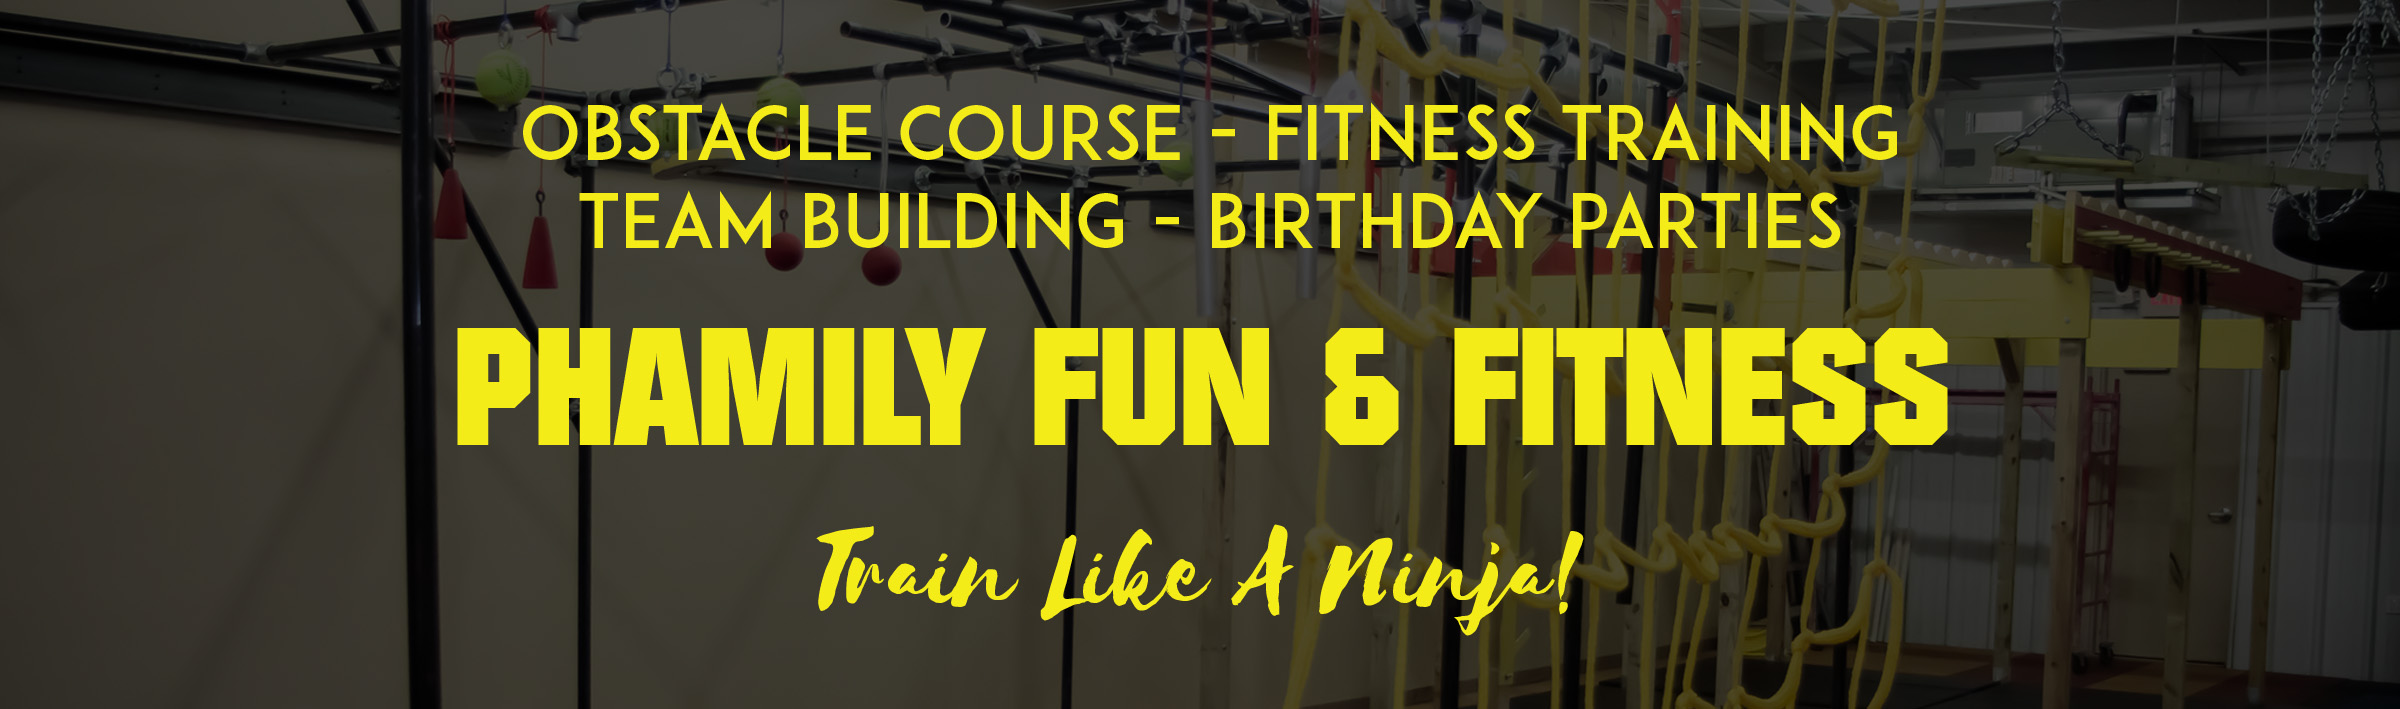 Indoor family obstacle course gym in Edmond Oklahoma Phamily Fun